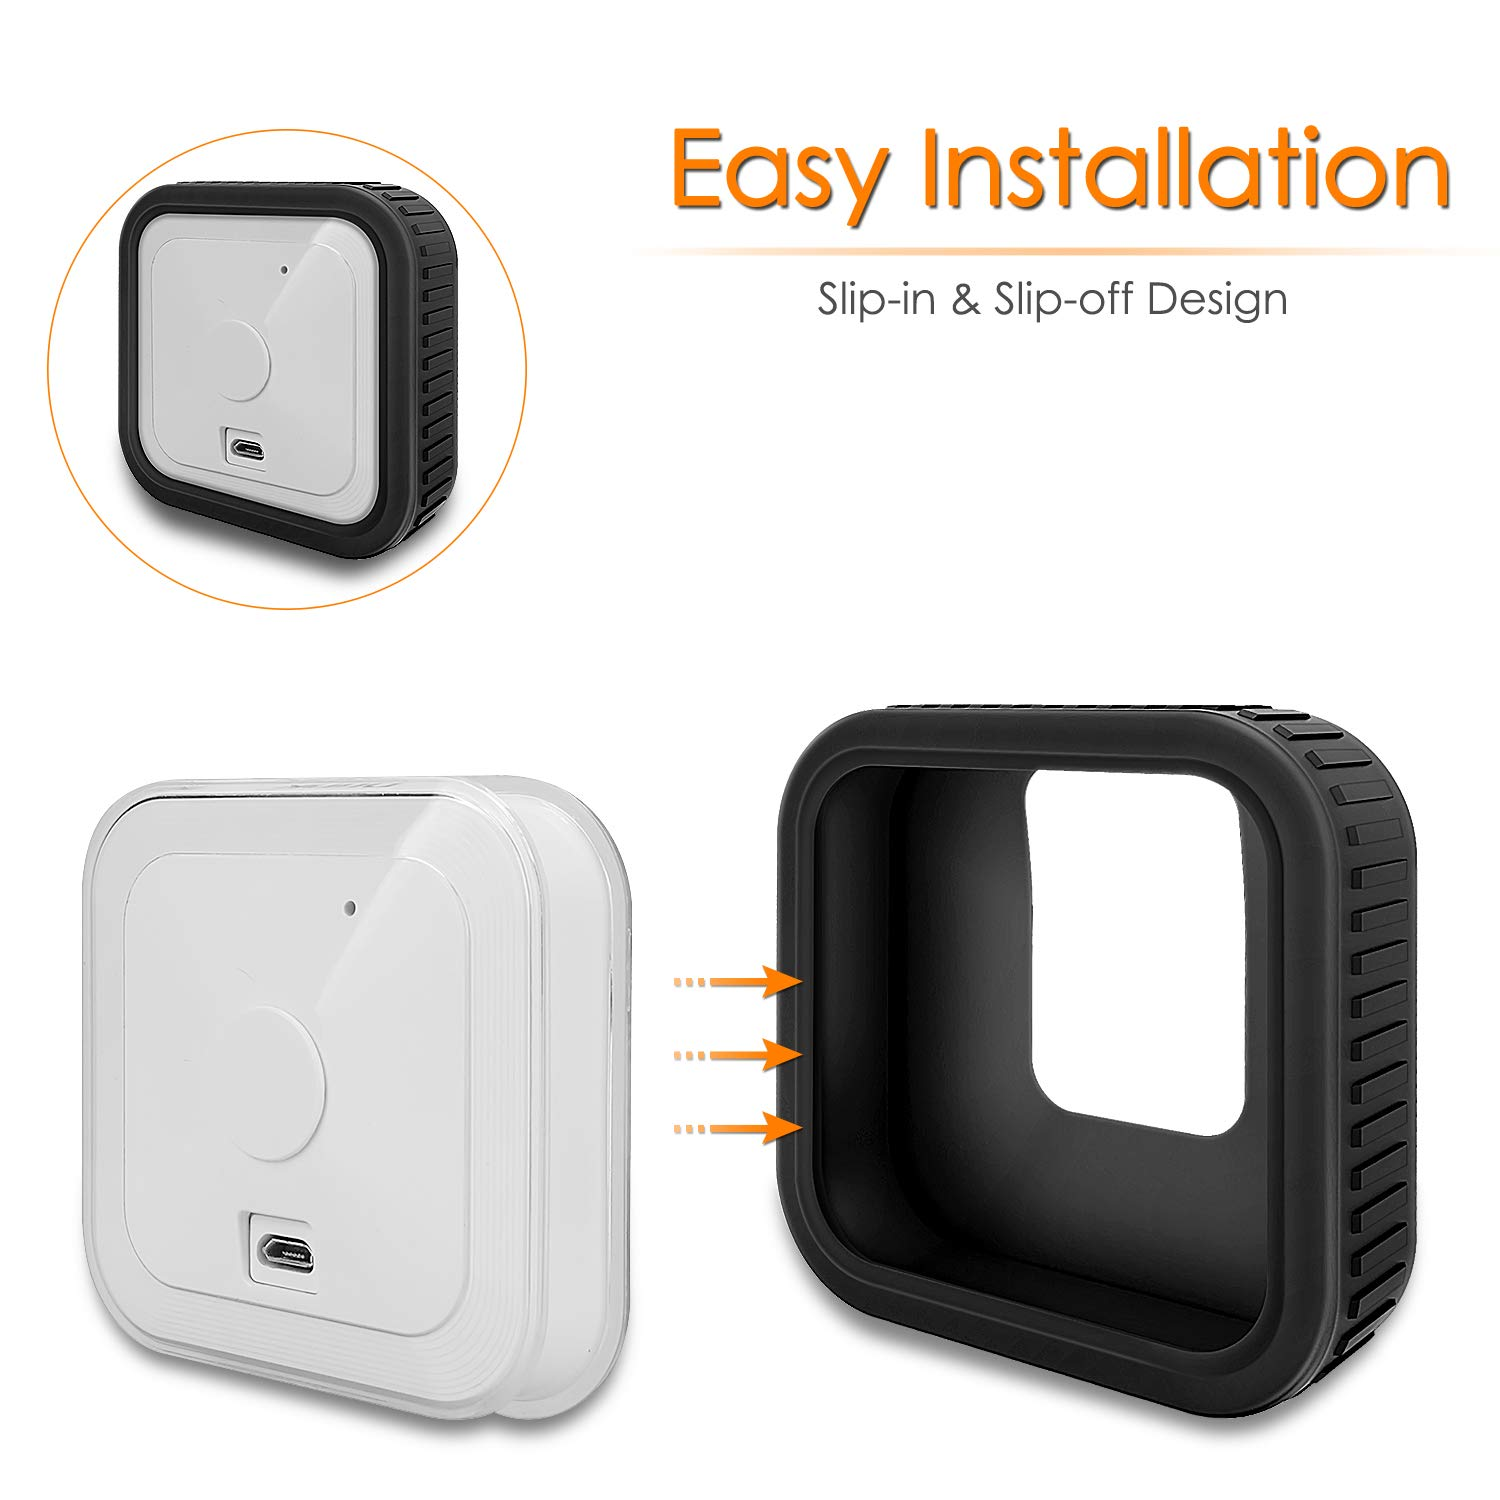 Soft Protective Skin Cover Silicone Case For Blink Indoor Home Security Camera